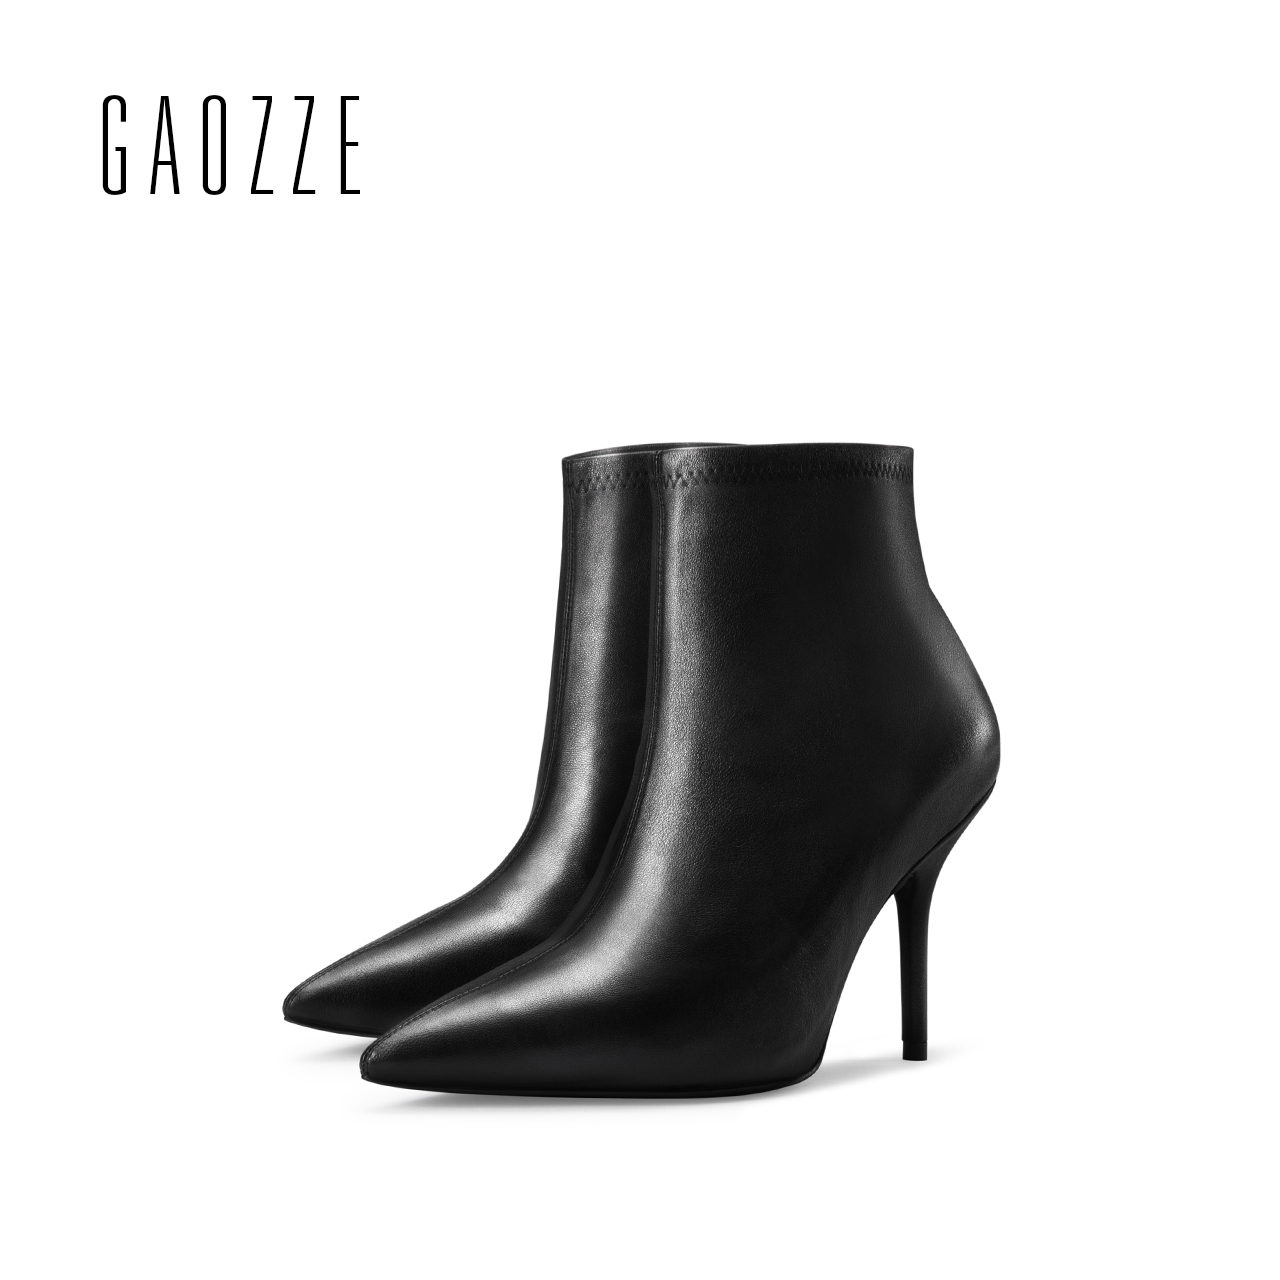 GAOZZE black women ankle boots shoes genuine leather boots pointed toe shoes 2017 autumn sexy high heel ankle boots for women xiangban handmade genuine leather women boots high heel ankle boots pointed toe vintage shoes red coffee 6208k11